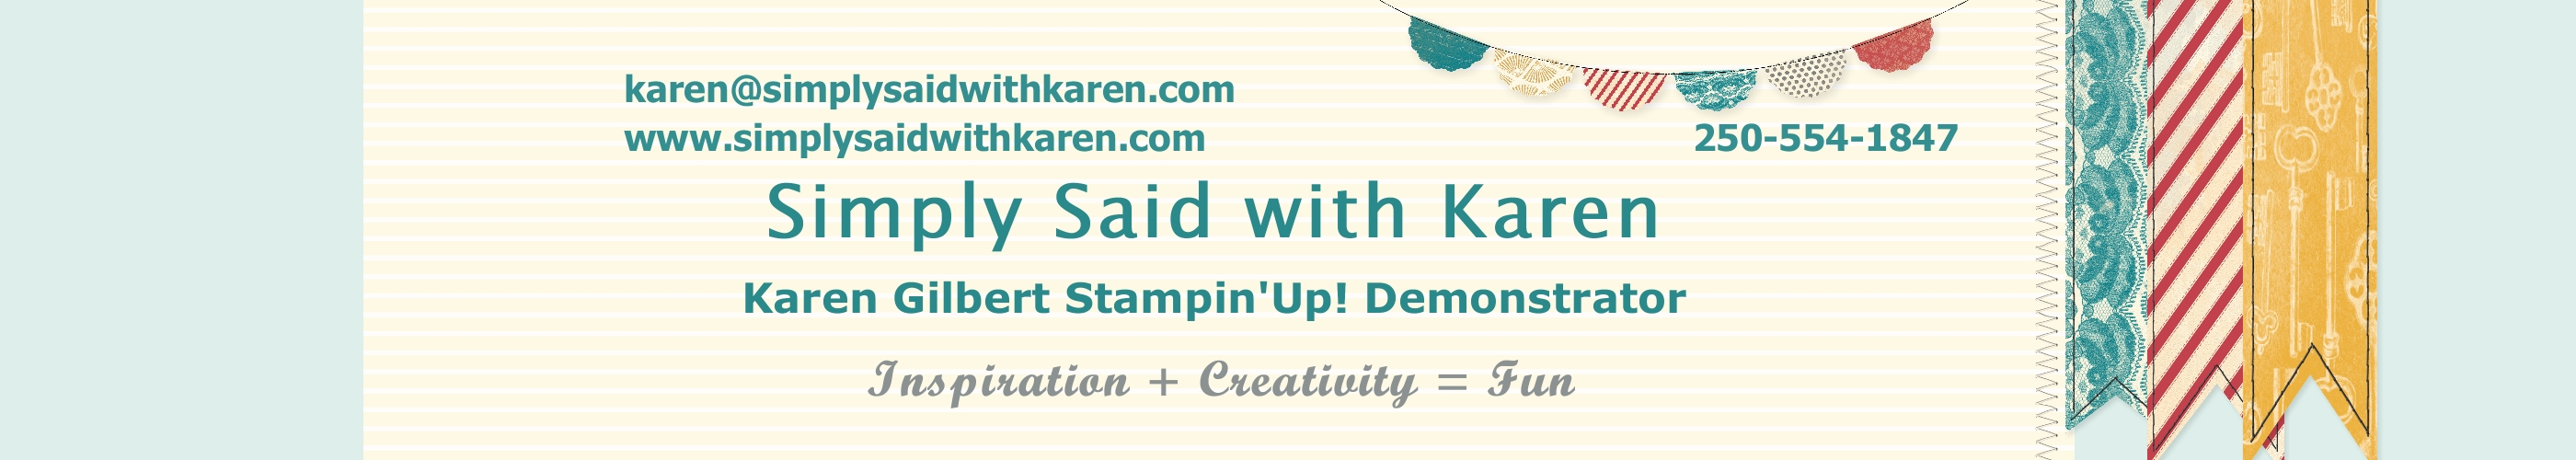 Simply Said With Karen